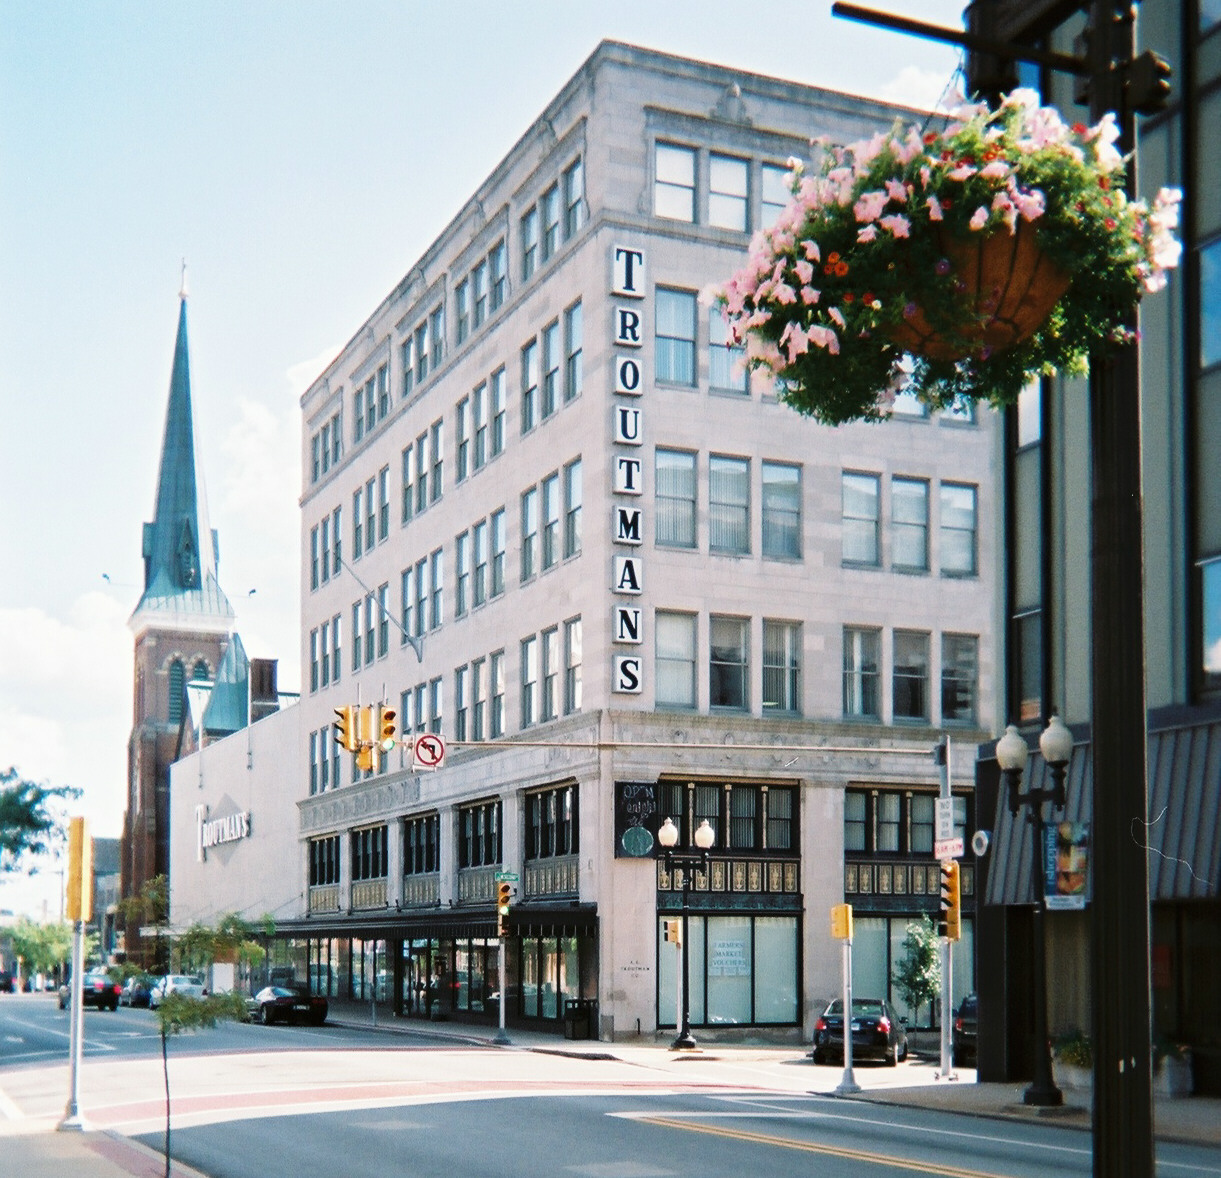 76 Best Images About Historic Downtown Storefronts On: Greensburg, Pennsylvania